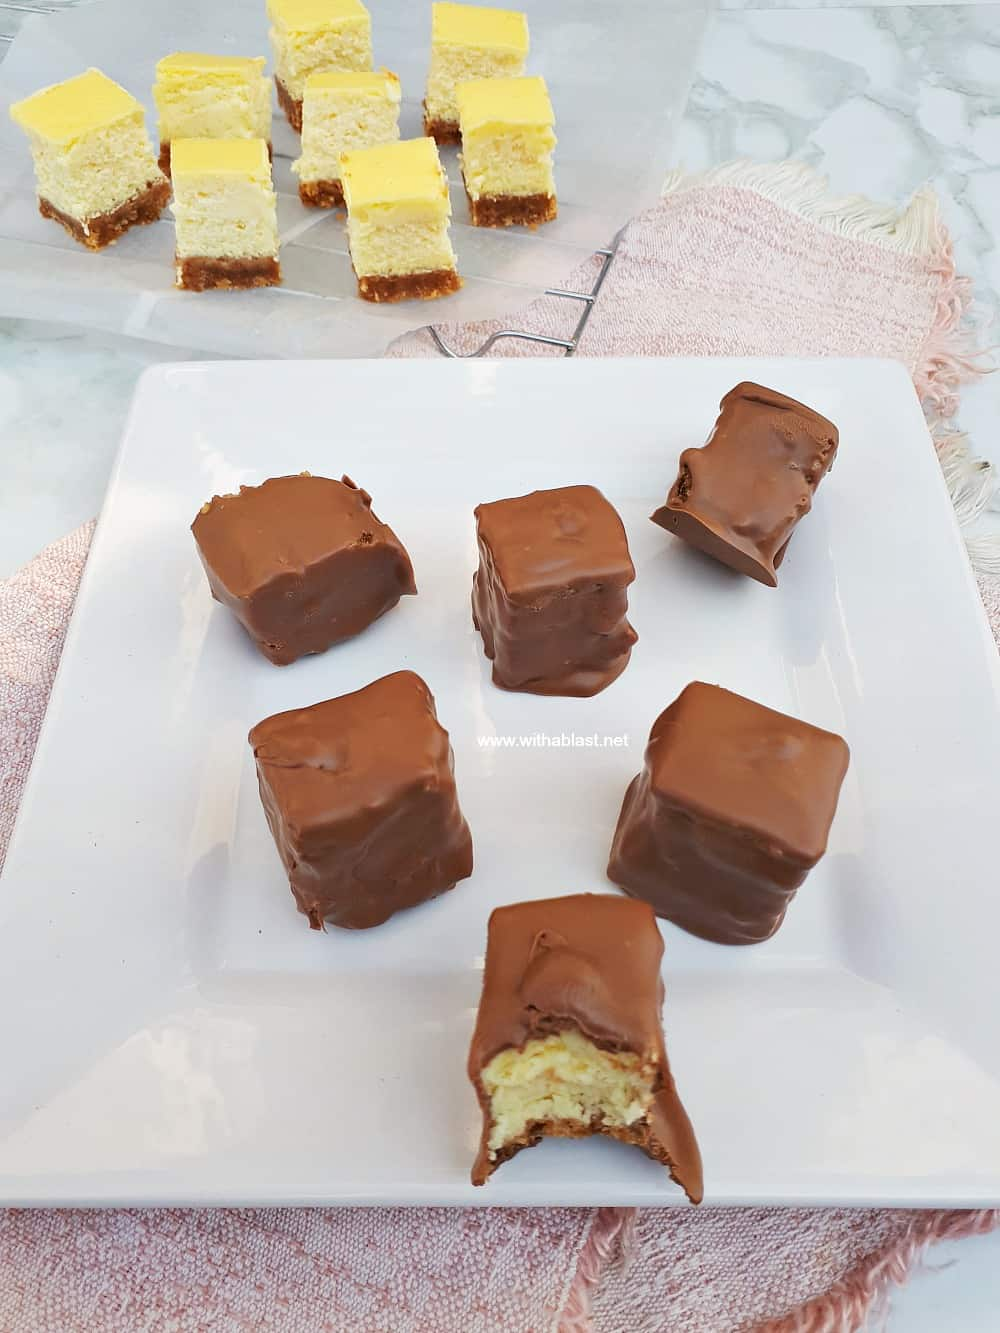 Cheesecake Bites Covered In Chocolate